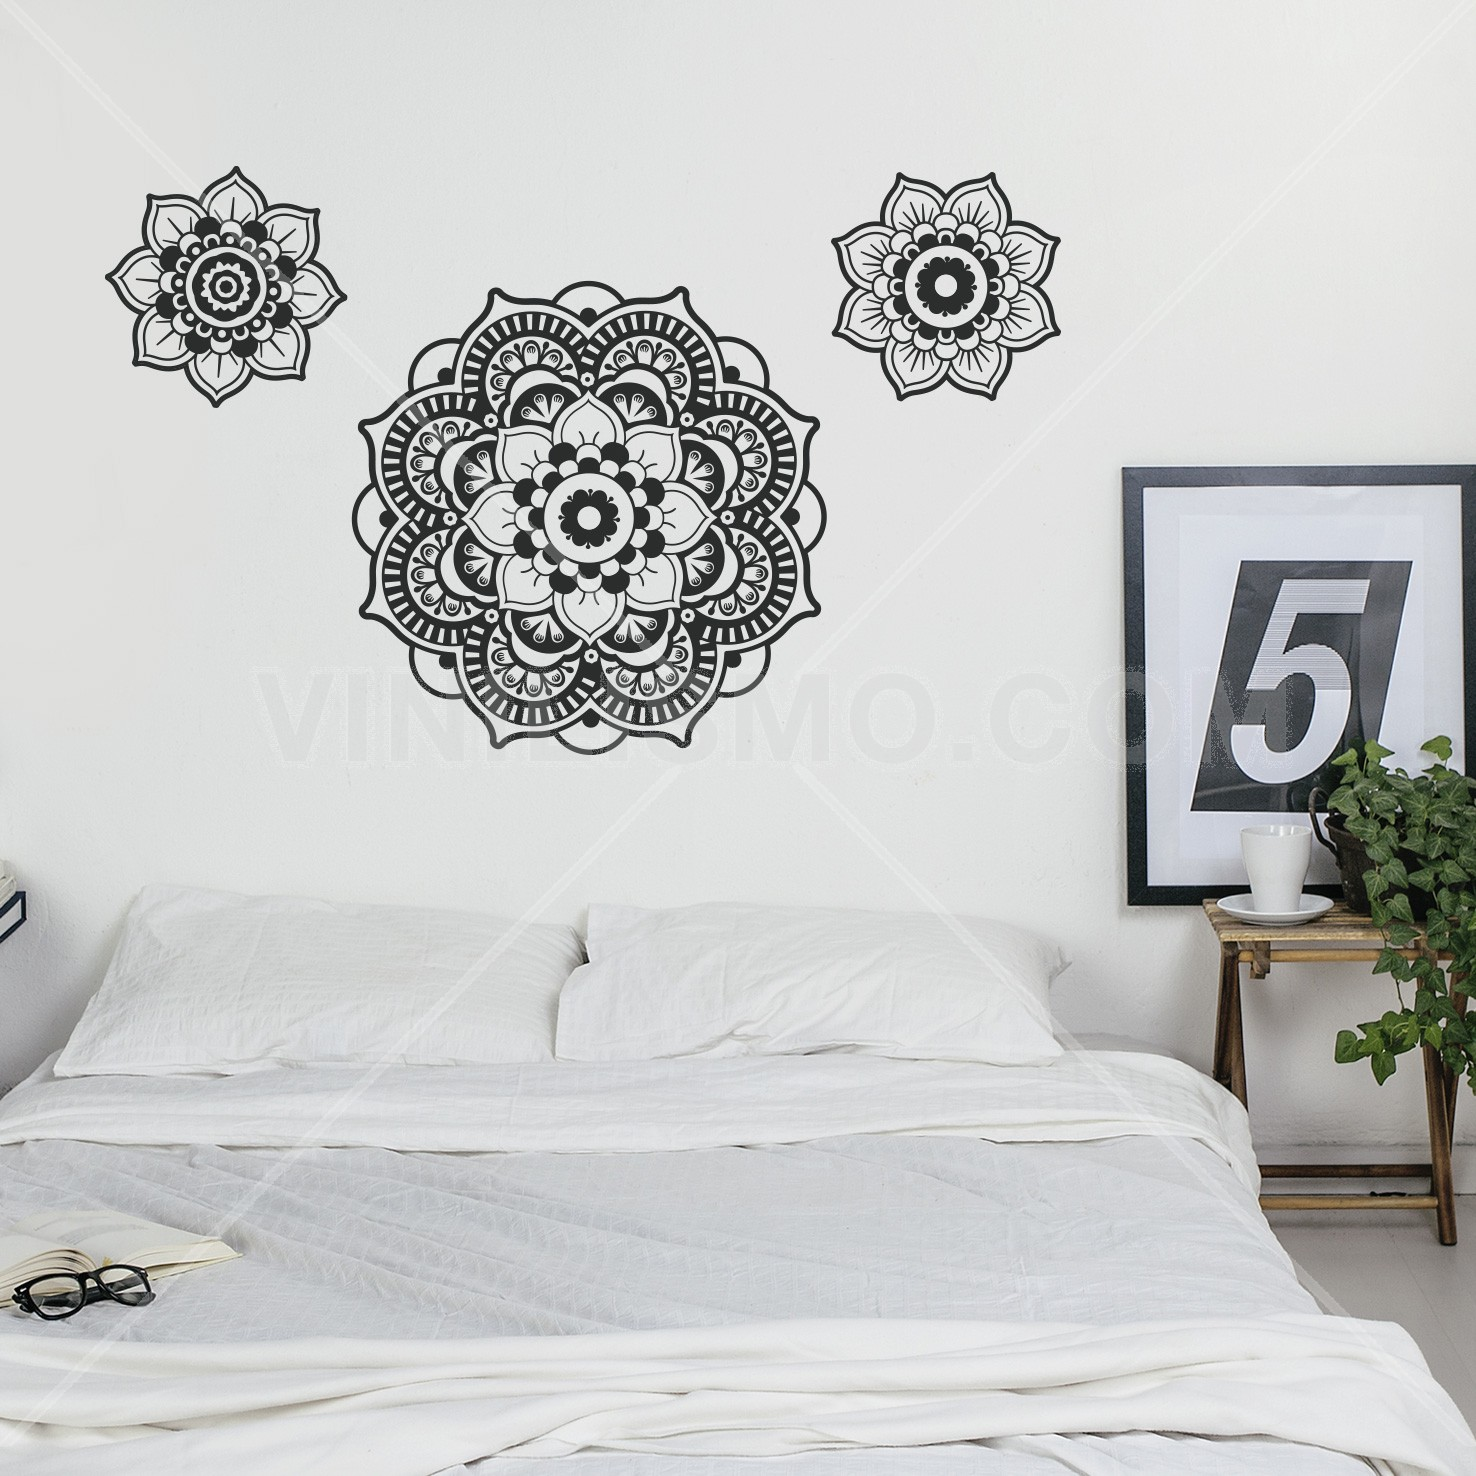 Vinilos Y Stickers Decorativos Para Pared